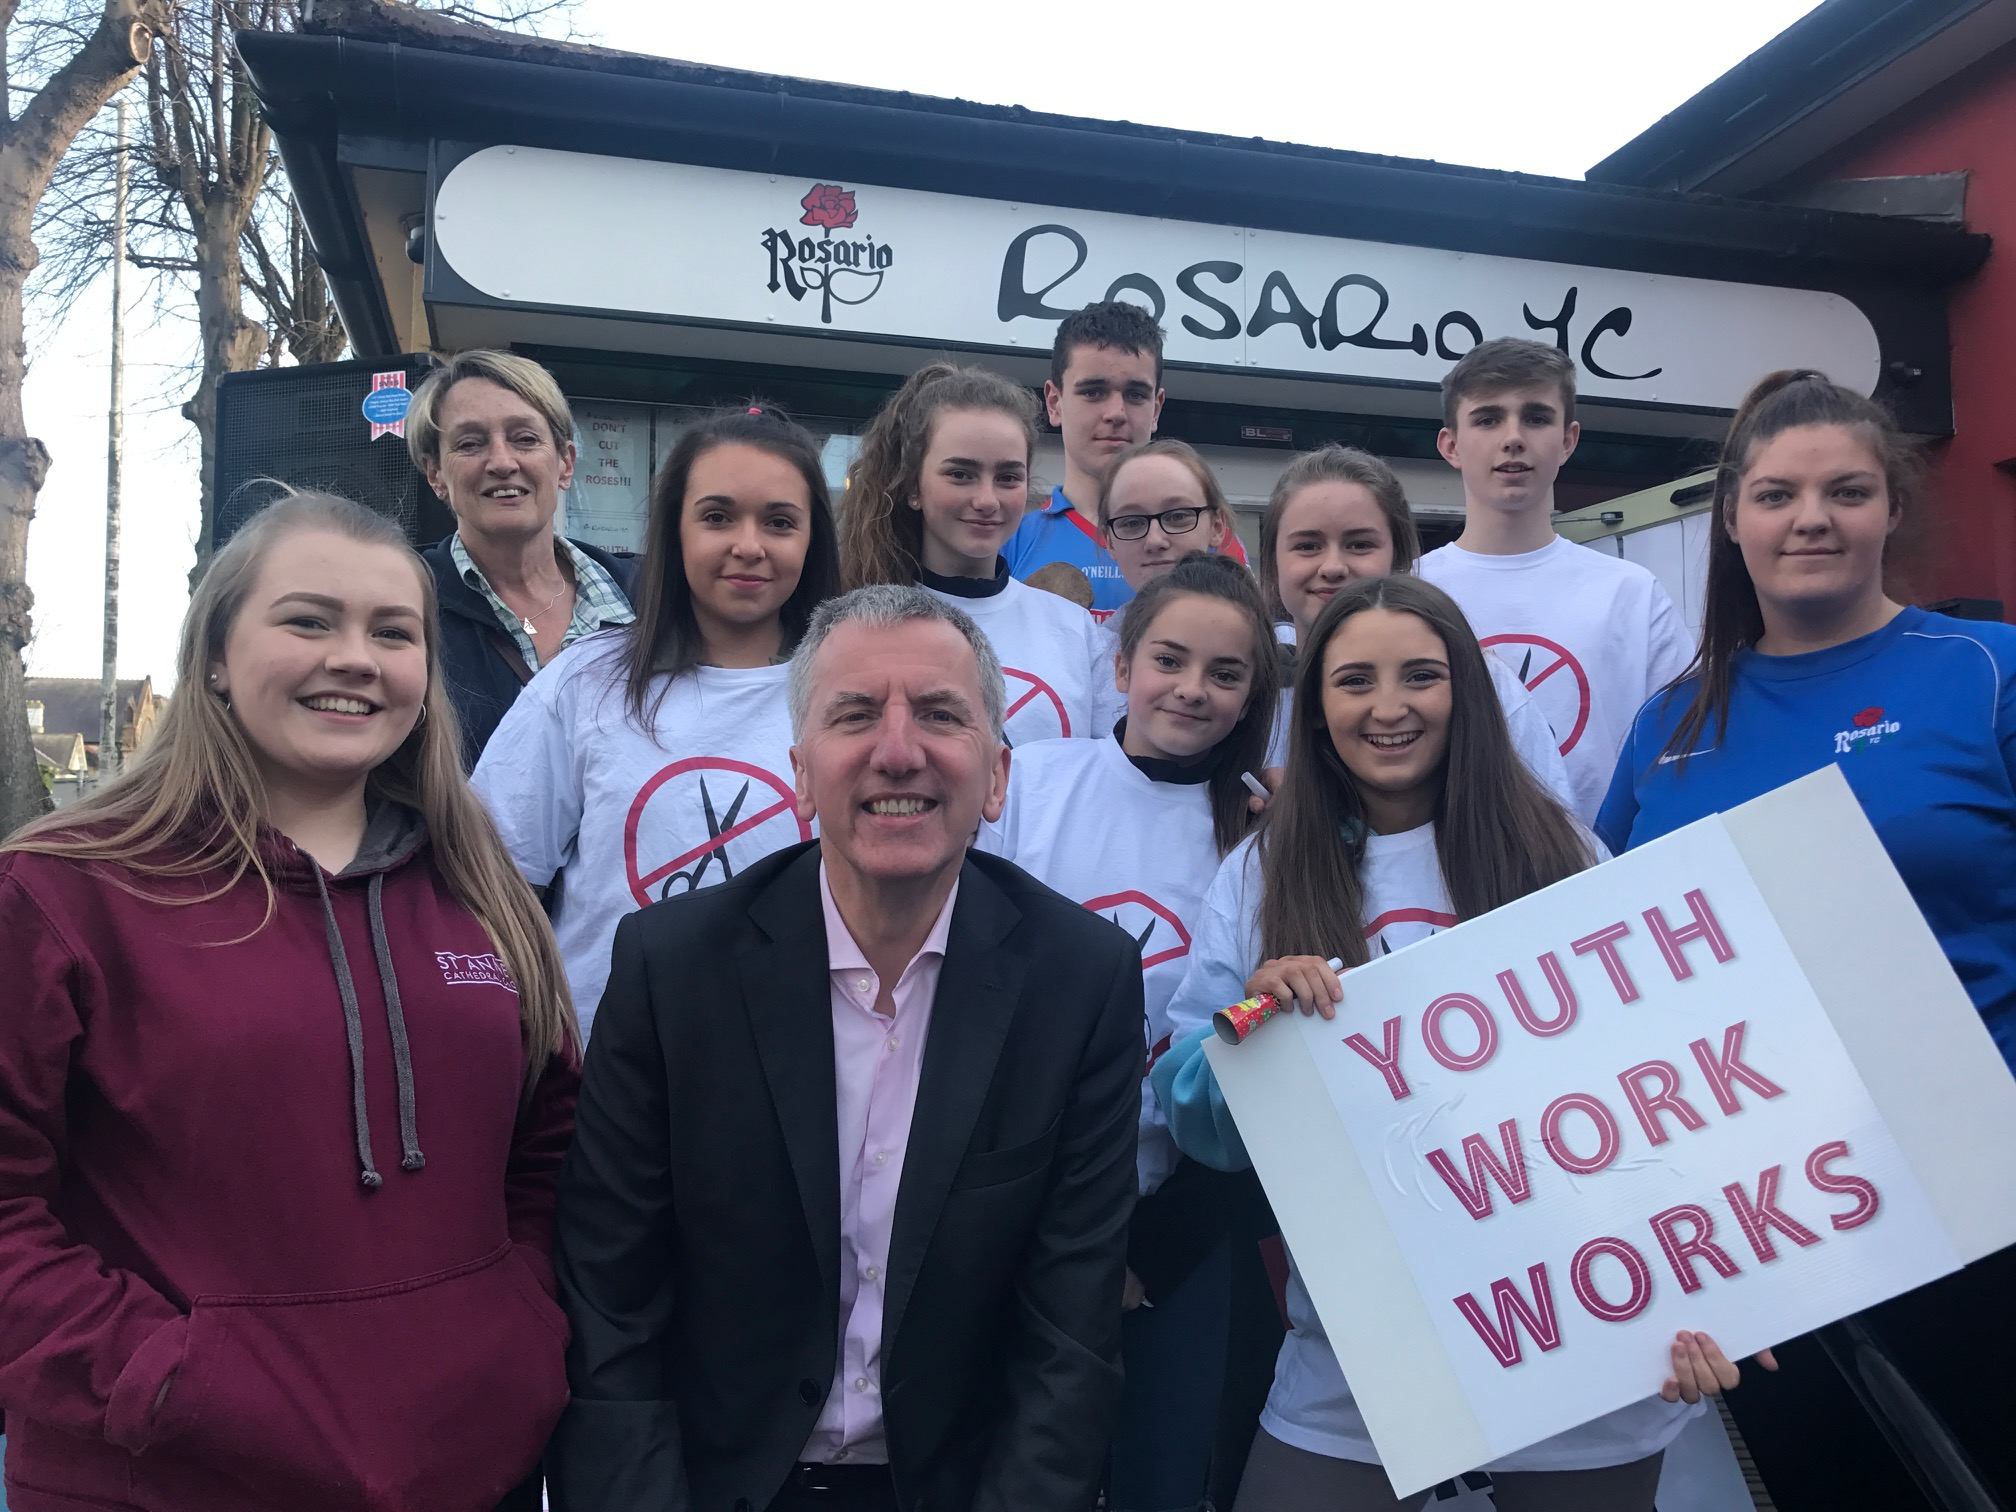 Youth work works: Kudos to youngsters who turned out to demand reinstatement of funding for Rosario YC